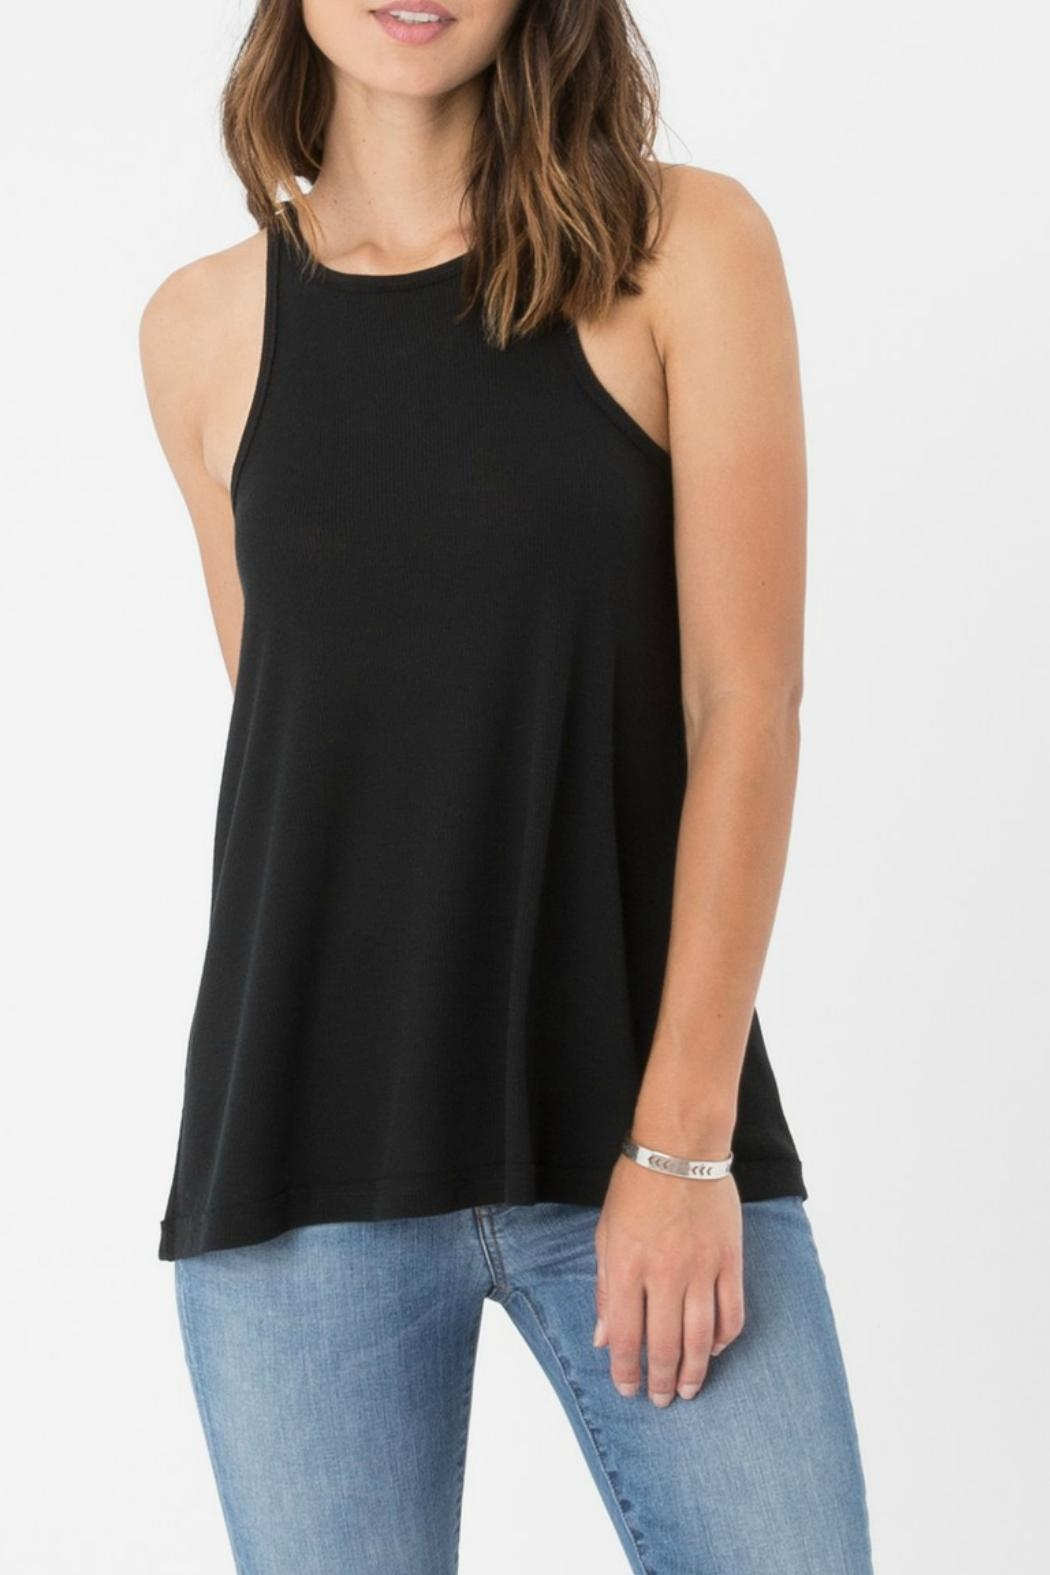 z supply Ribbed Racerback Tank Top - Front Cropped Image